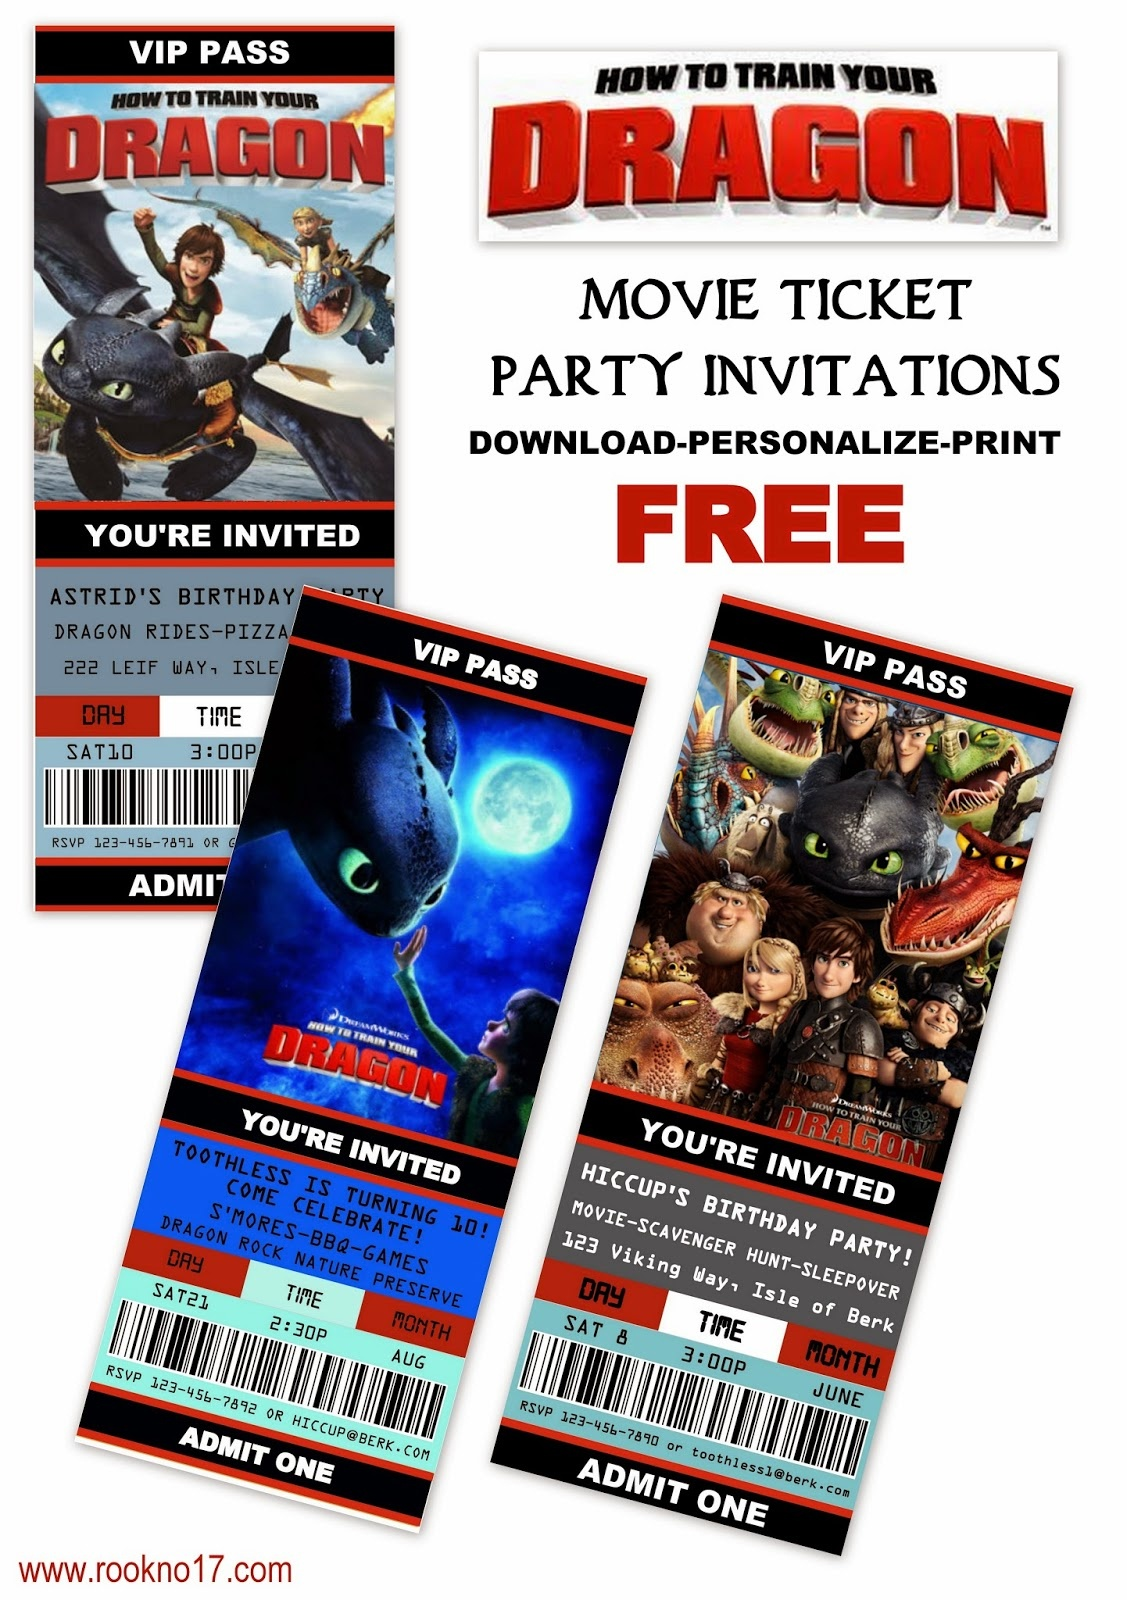 Train Party Invitation Template. Thomas The Train Ticket Party - How To Train Your Dragon Birthday Invitations Printable Free